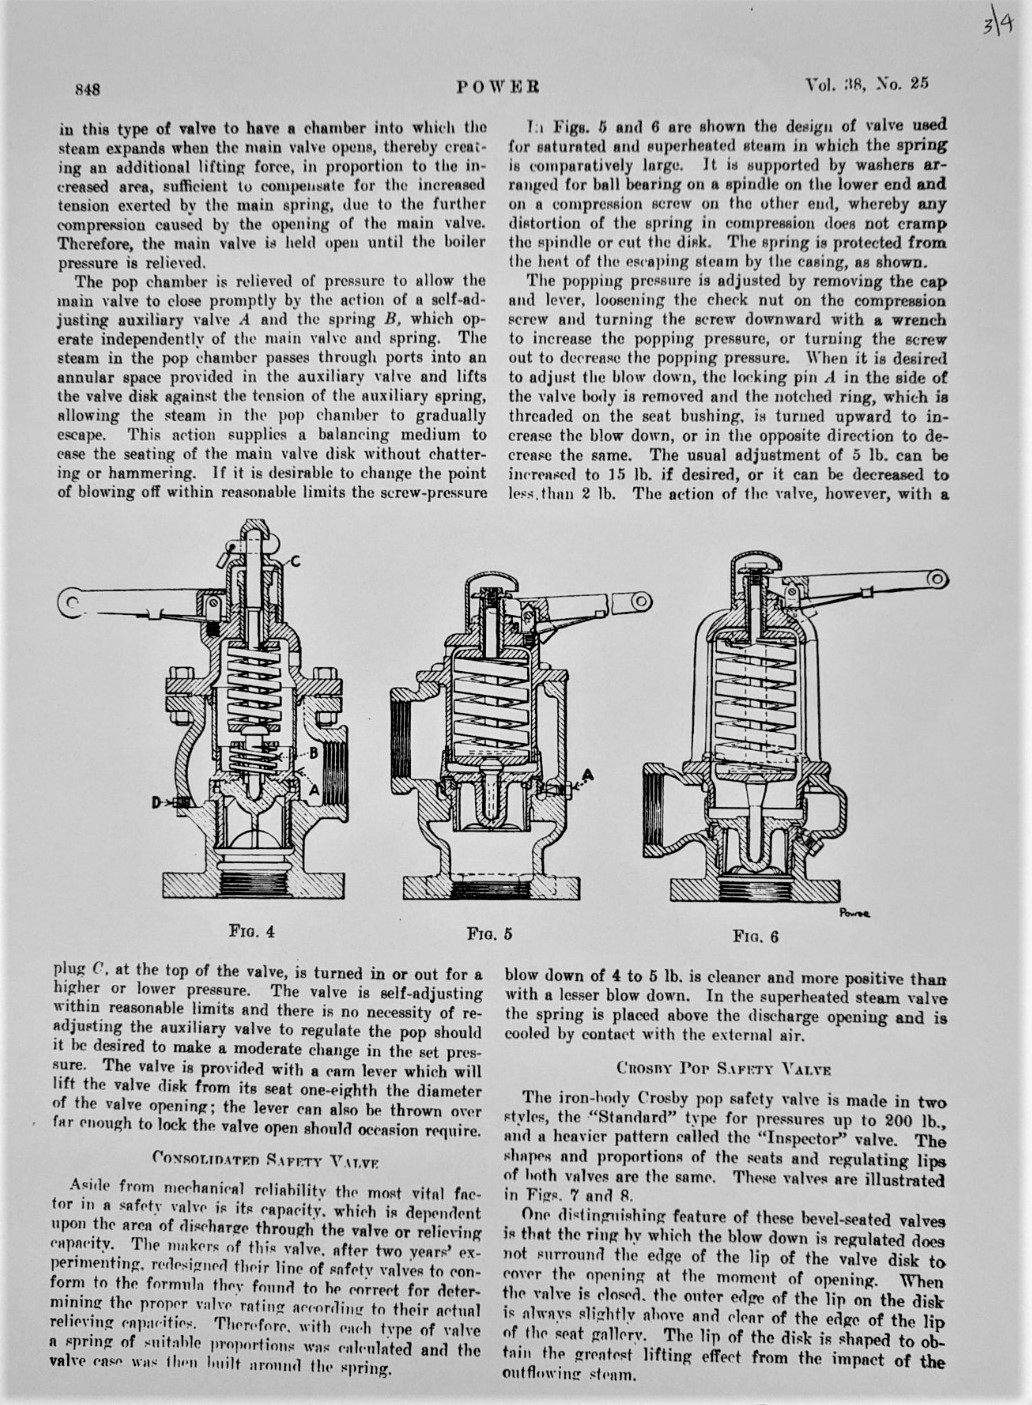 pop safety valves 1913  3.jpg